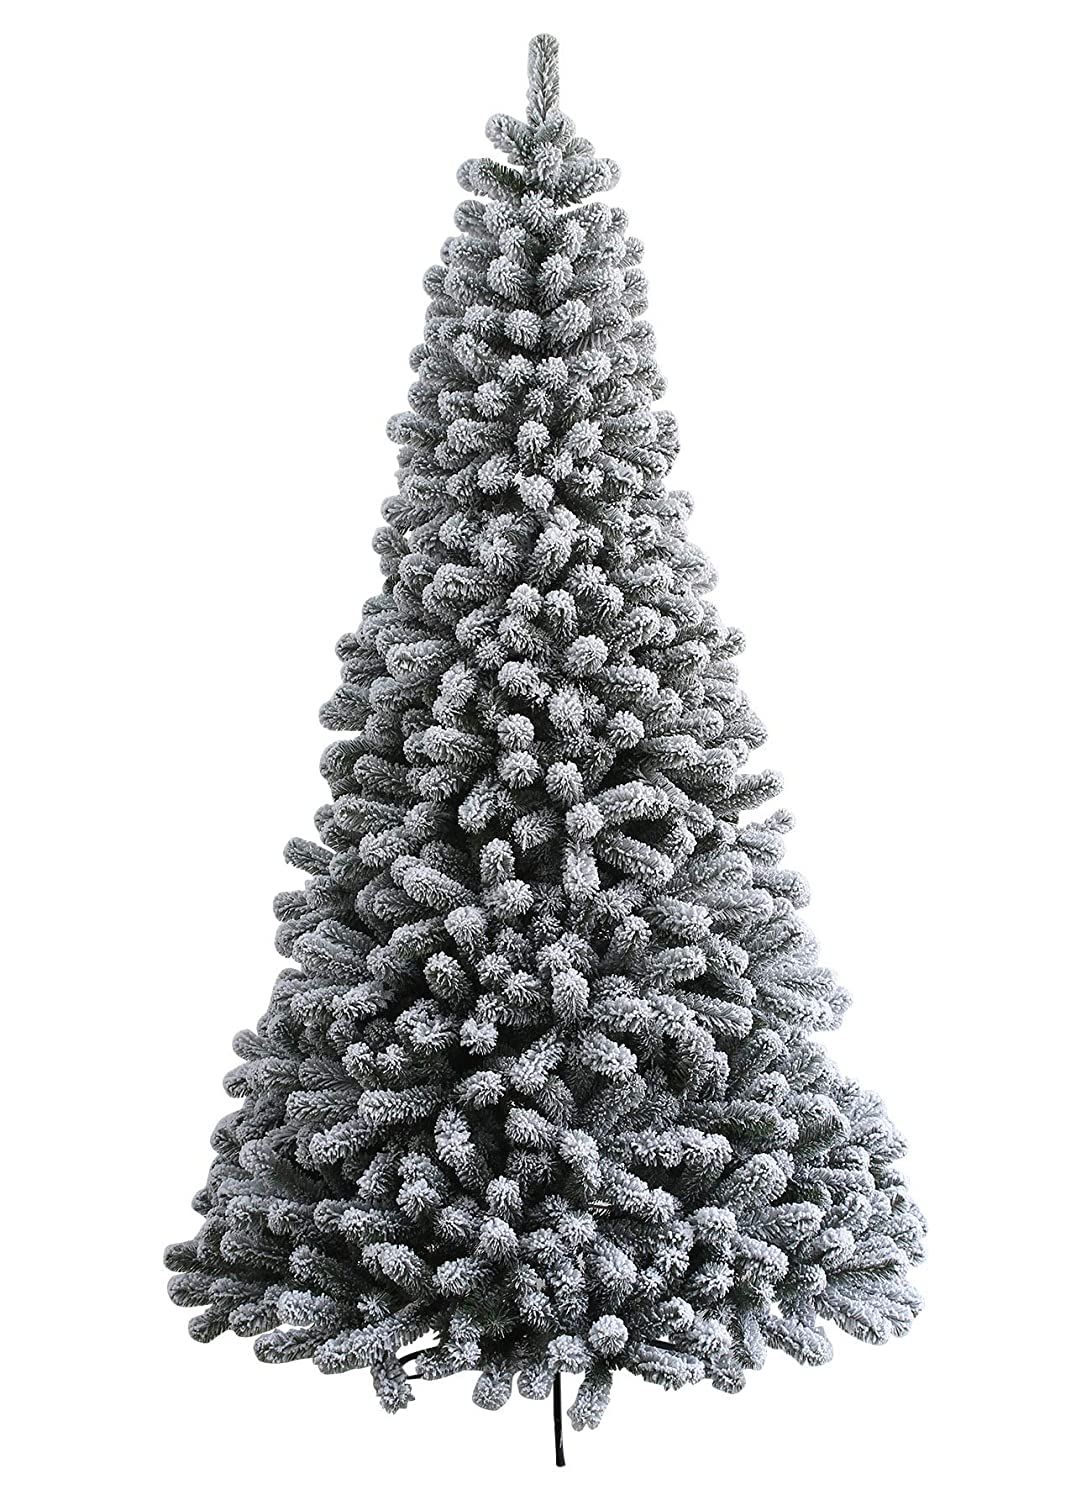 King Of Christmas 7 Foot Prince Flock Artificial Christmas Tree With 400 Warm White Led Lights